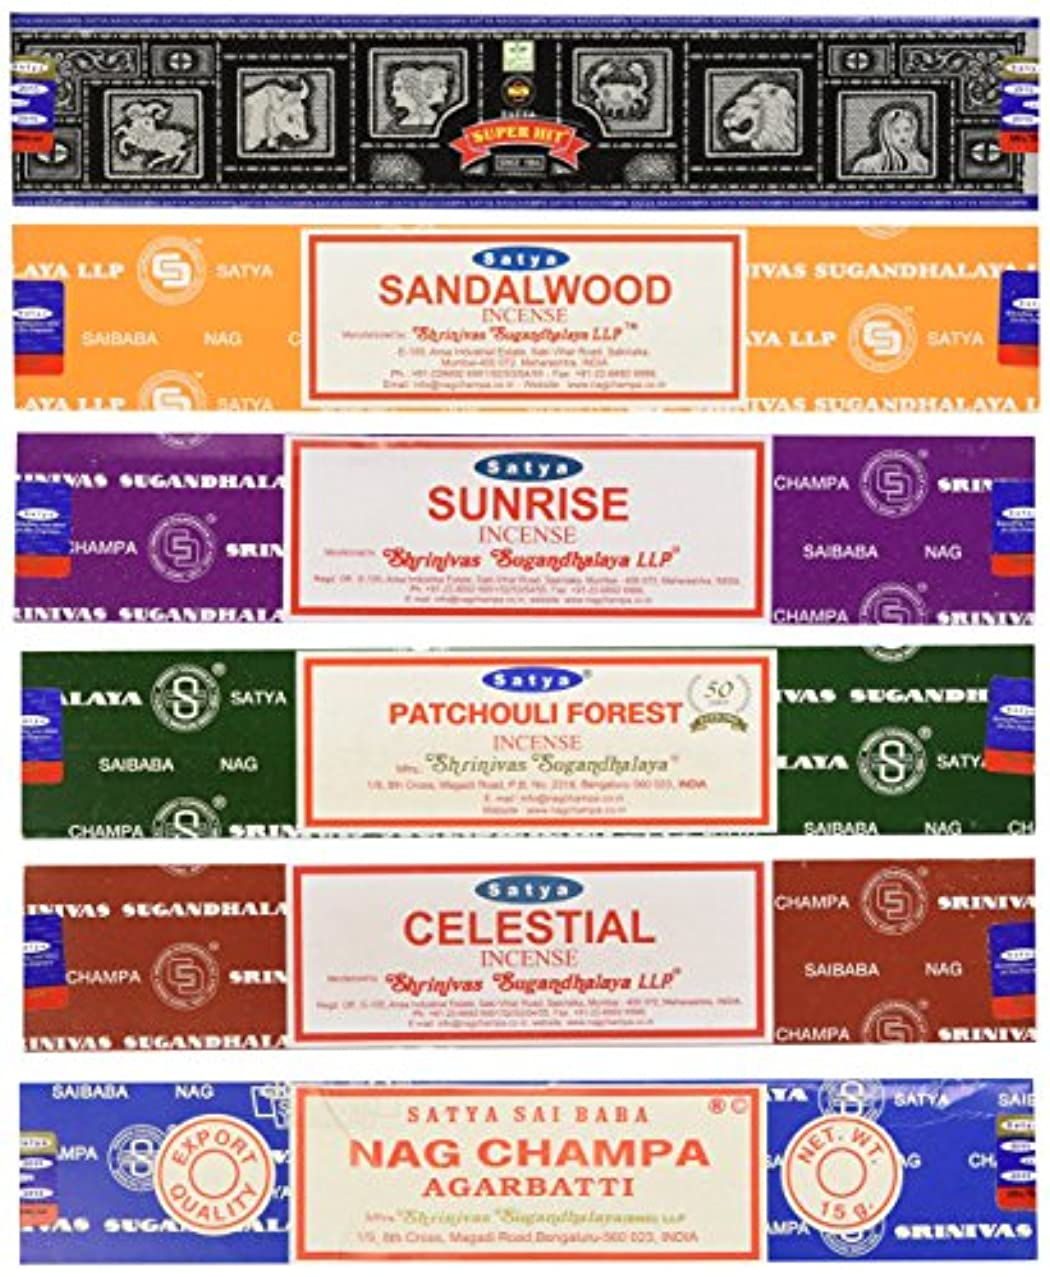 委任する認証触覚Set of 6 Nag Champa Sunrise Sandalwood Patchouli Celestial Super Hit by Satya